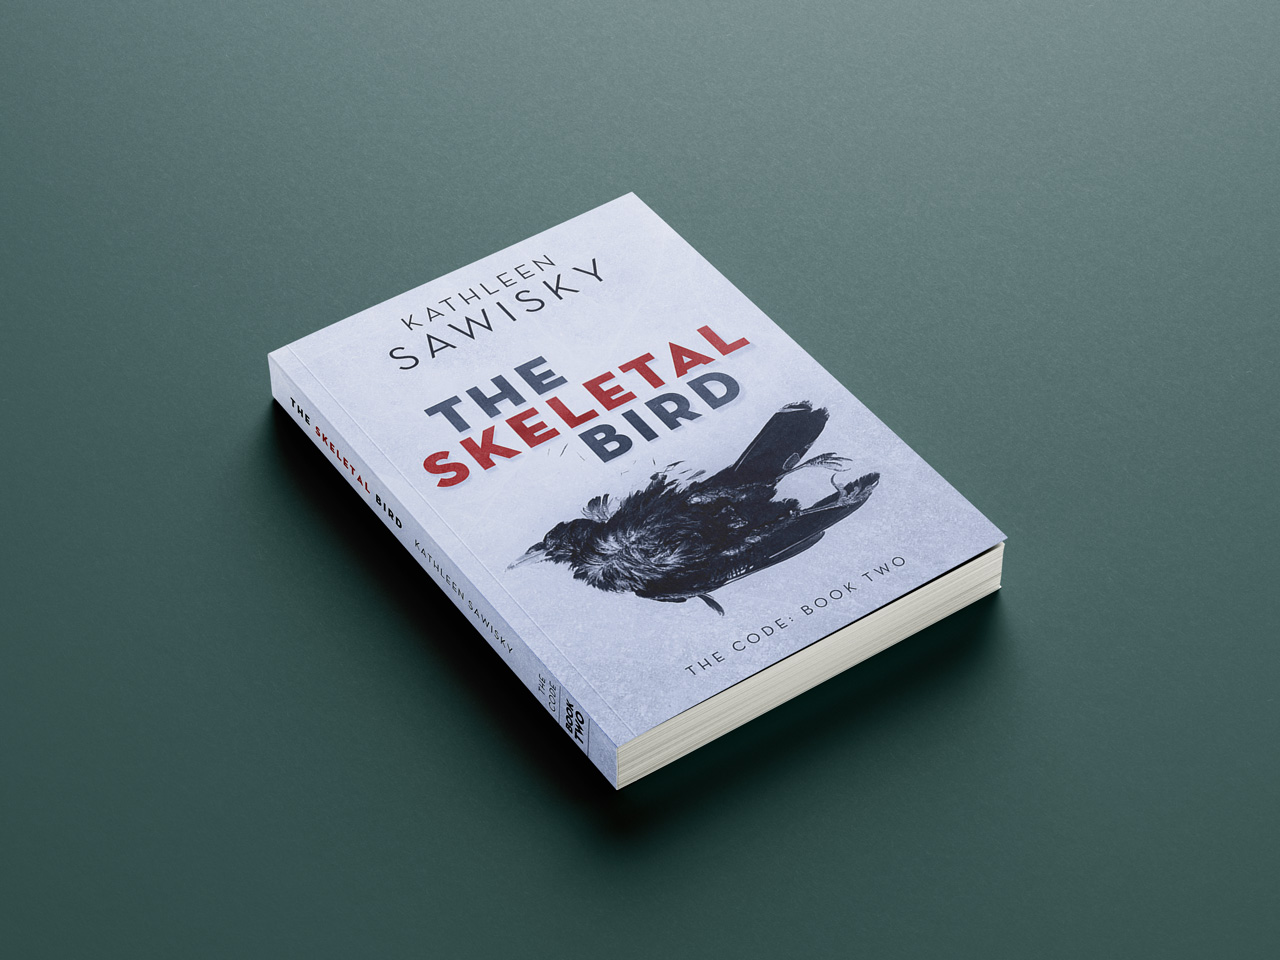 project book covers the skeletal bird cover